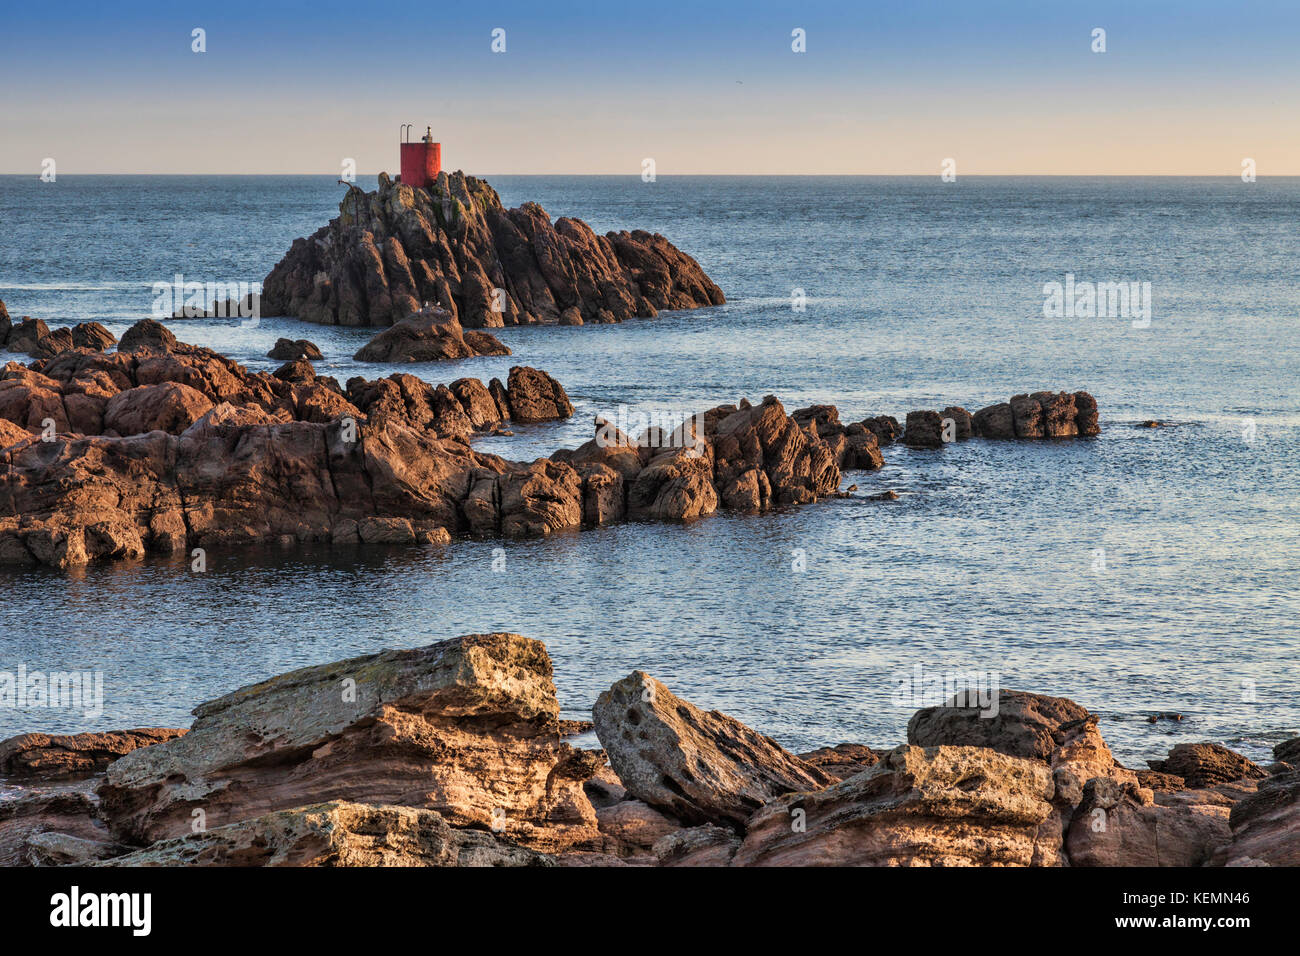 Offshore rocks and lighthouse on the entrance channel to the Port of Tauranga, Bay of Plenty, New Zealand. - Stock Image